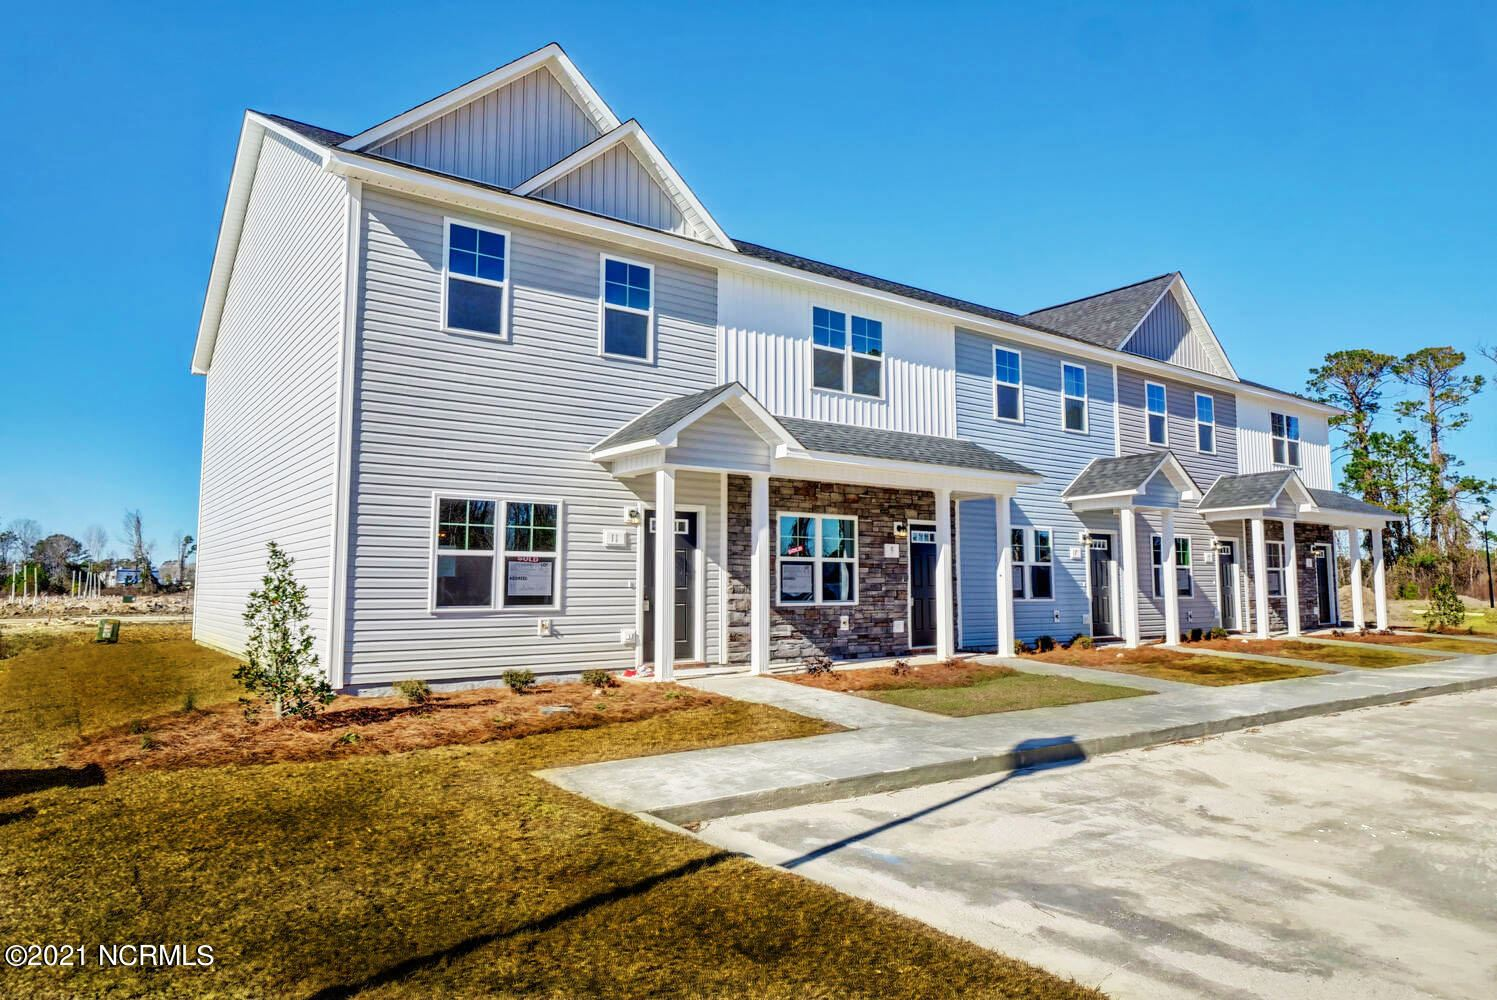 Photo of 57 Outrigger Drive, Swansboro, NC 28584 (MLS # 100252460)